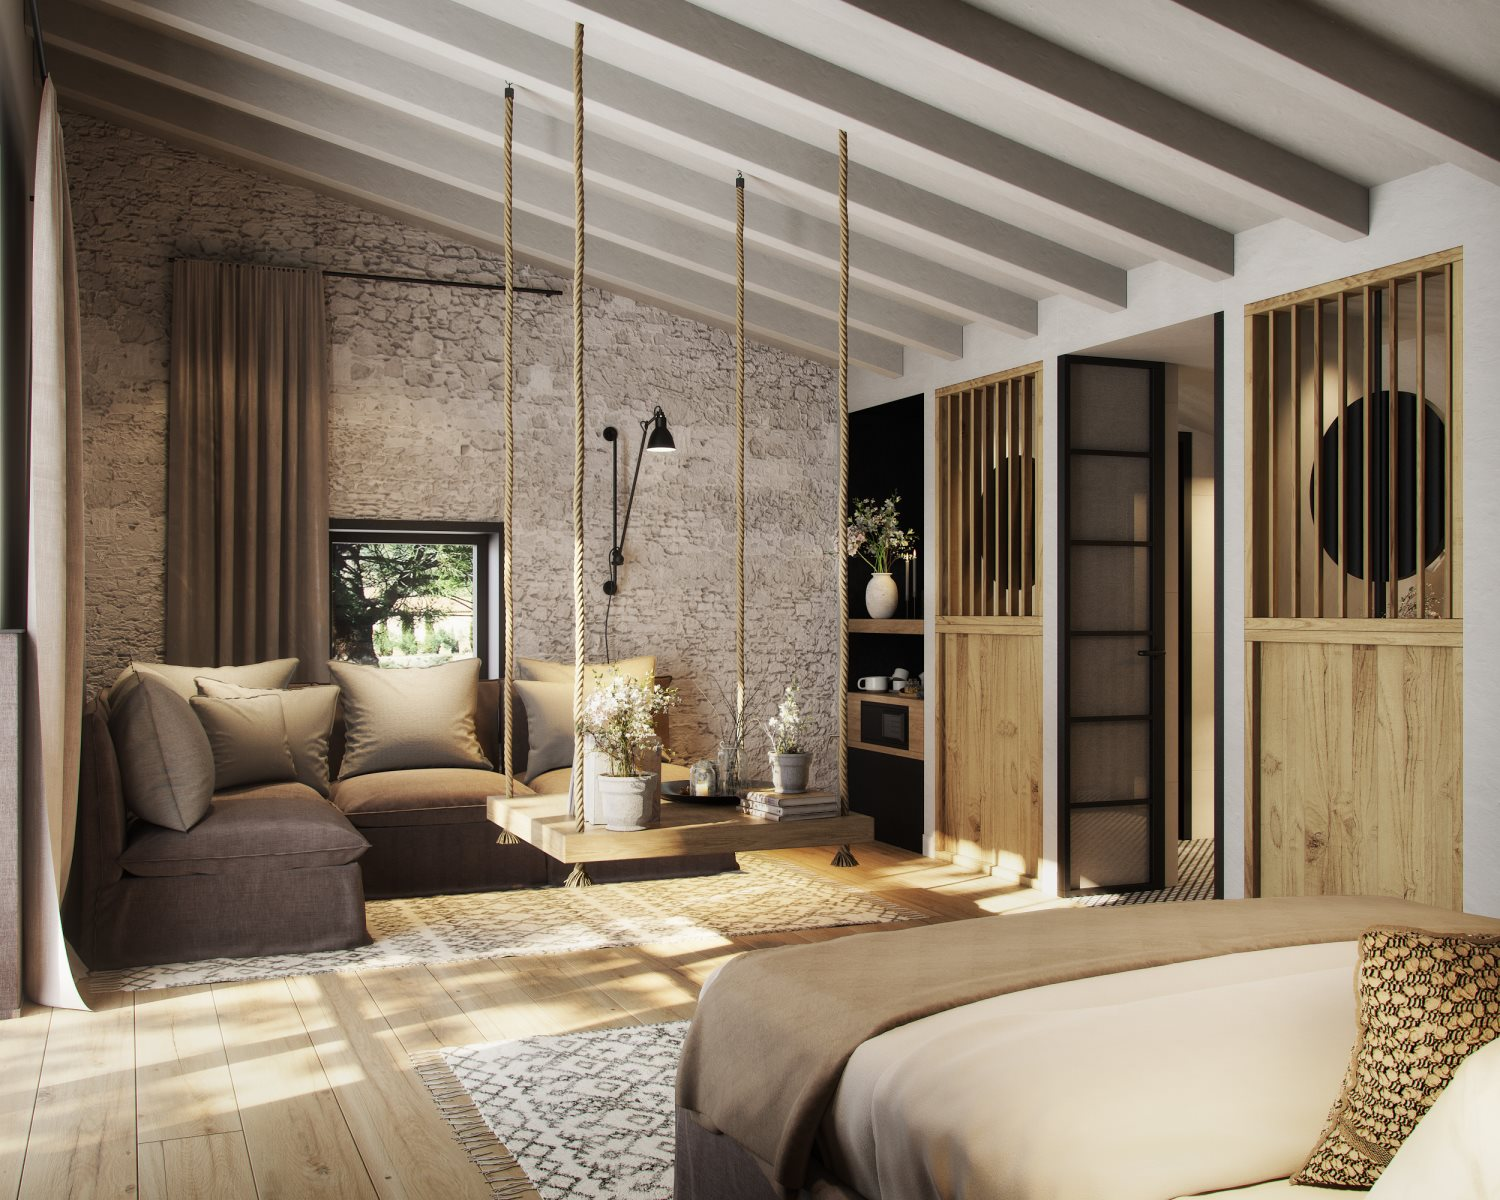 3D RENDERS OF THE STANDARD ROOM OF A RURAL HOTEL